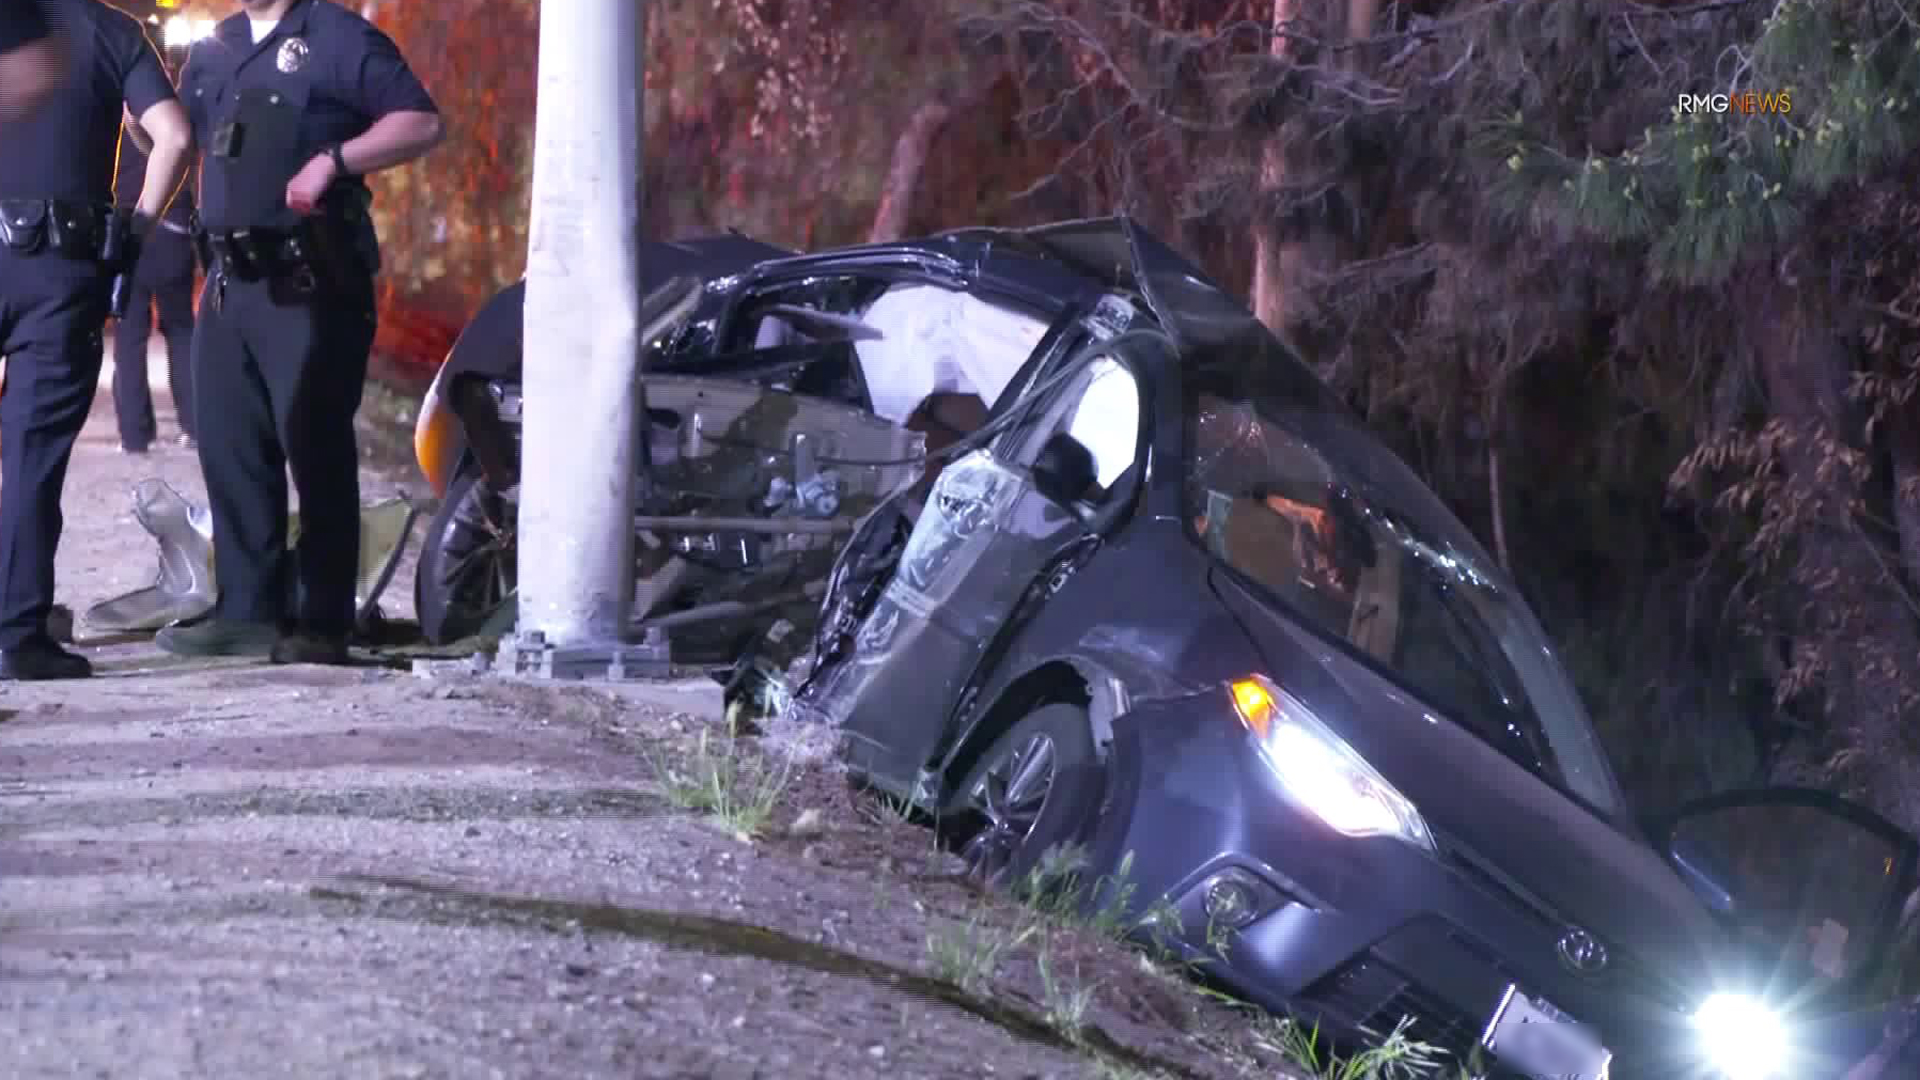 3 Teens Injured 1 Critically After Stolen Vehicle Pursuit Ends